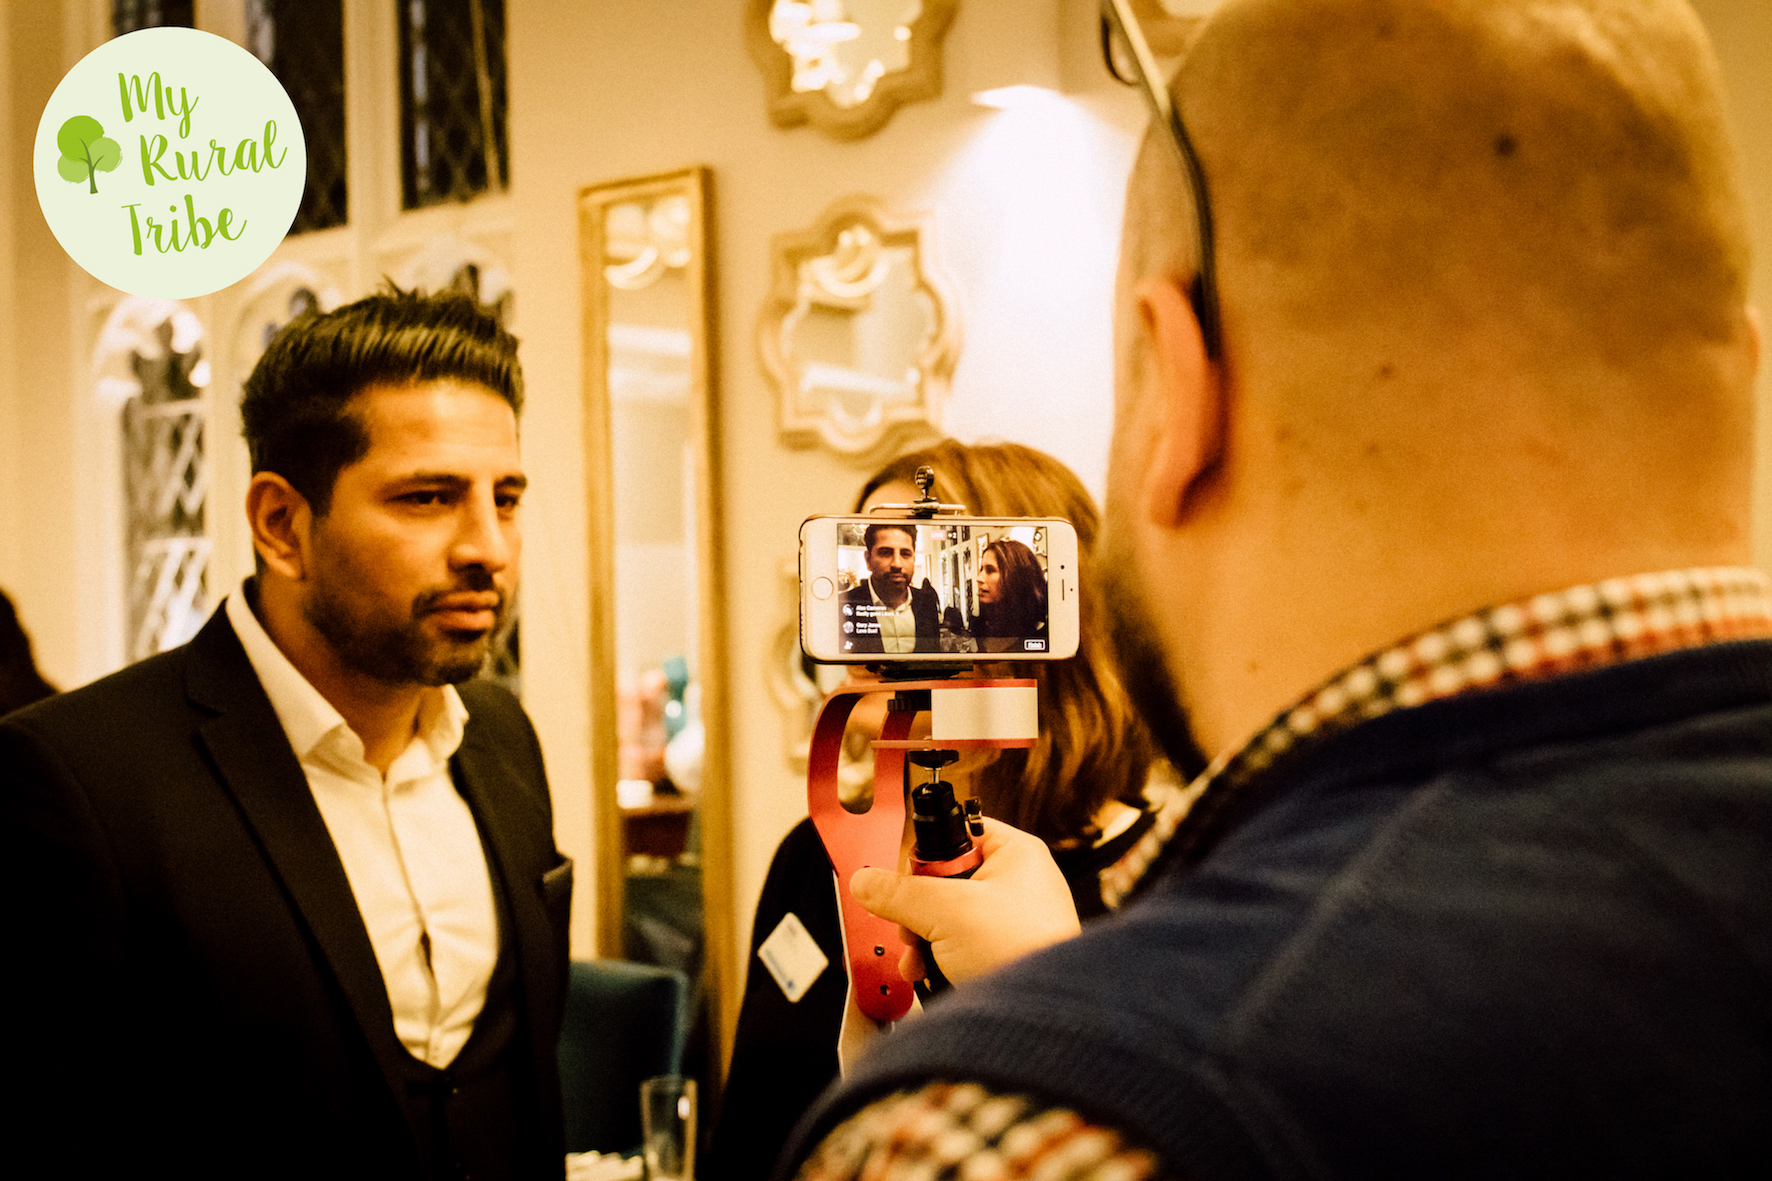 Facebook Live interview at a networking event